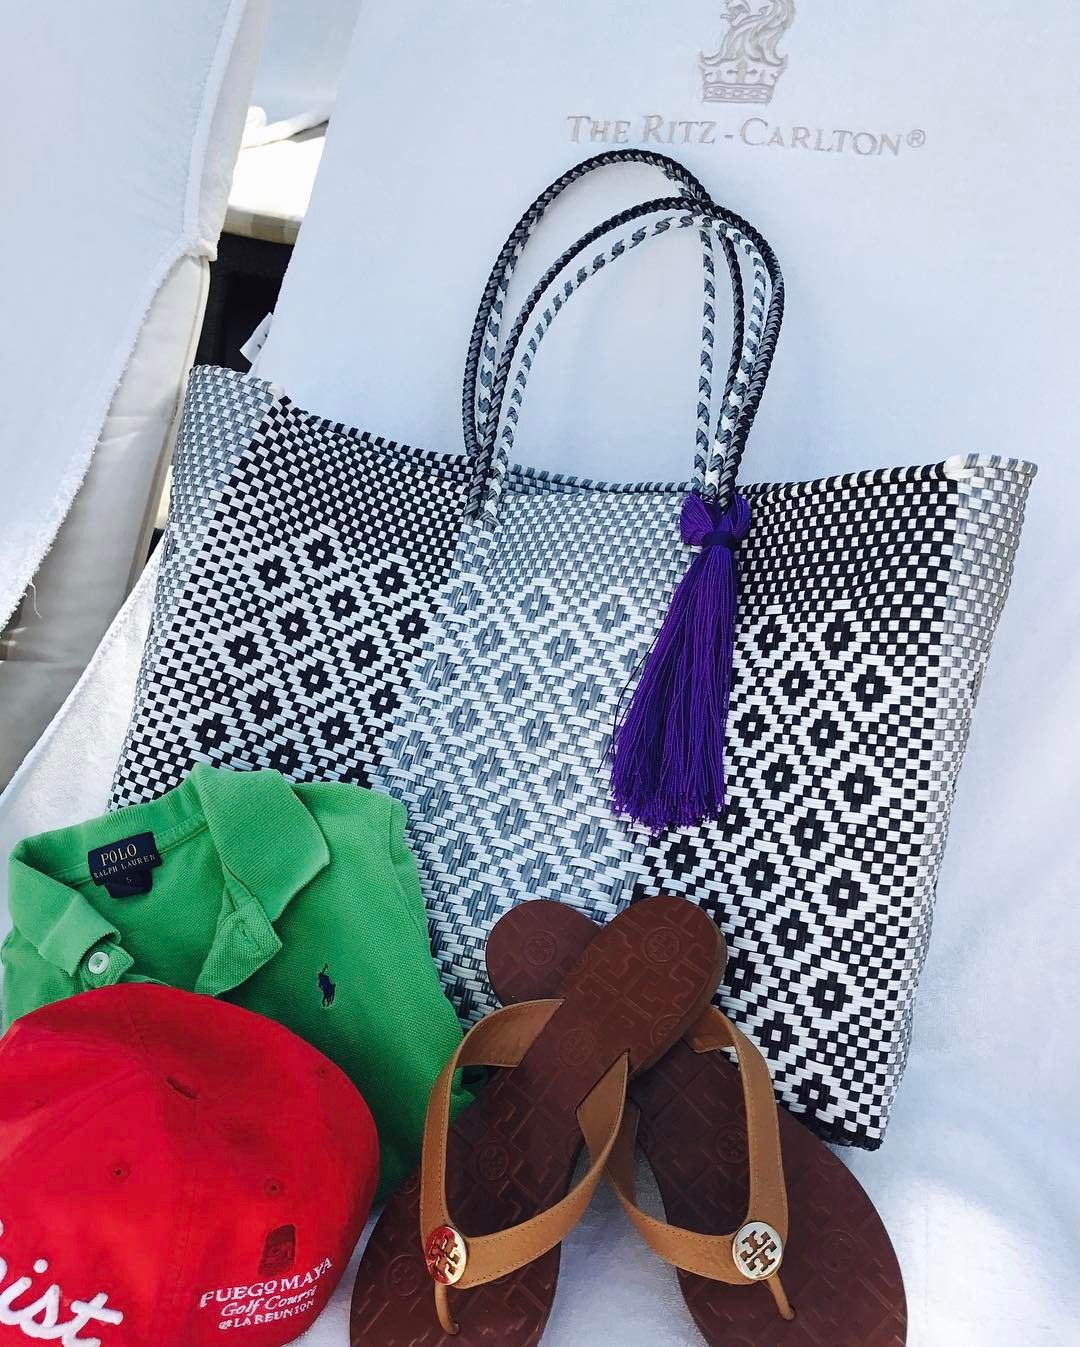 Oxiguatemala Relaxing Poolside At The Ritzcarltonranchomirage With Our Plastic Woven Beach Bag Available On